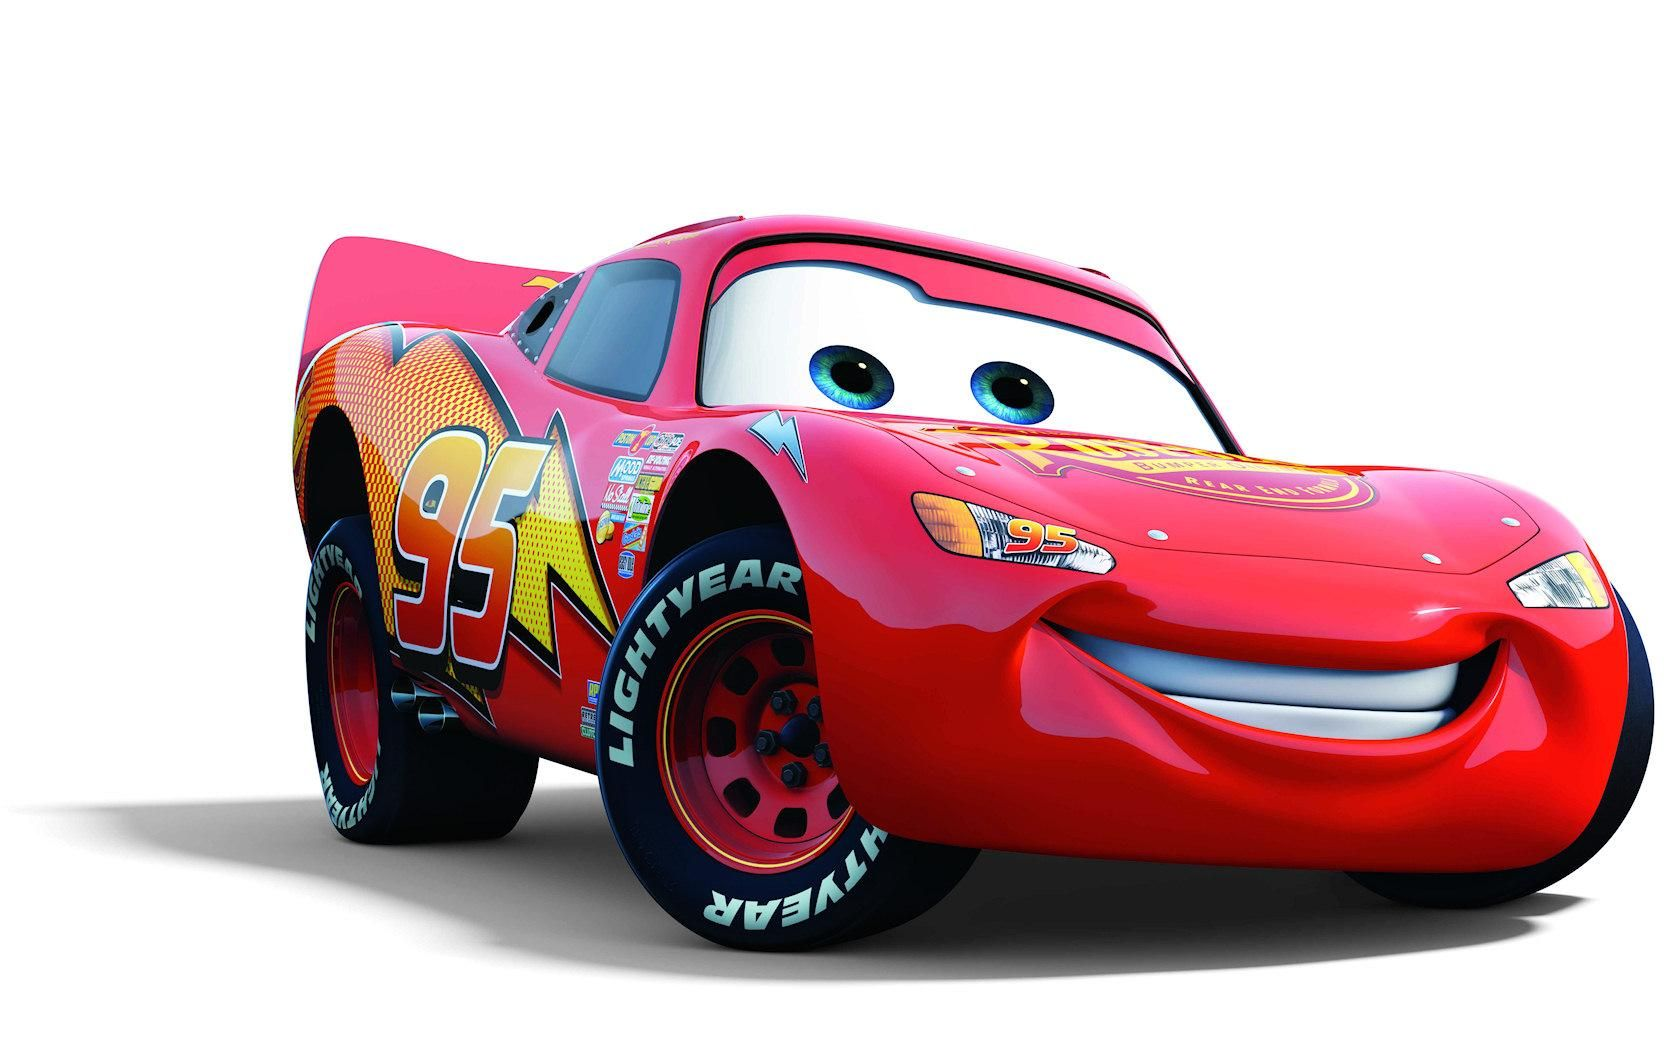 Cars Lightning Mcqueen 001 Wallpaper Hd Wallpaper Disney Cars Movie Cars Movie Disney Cars